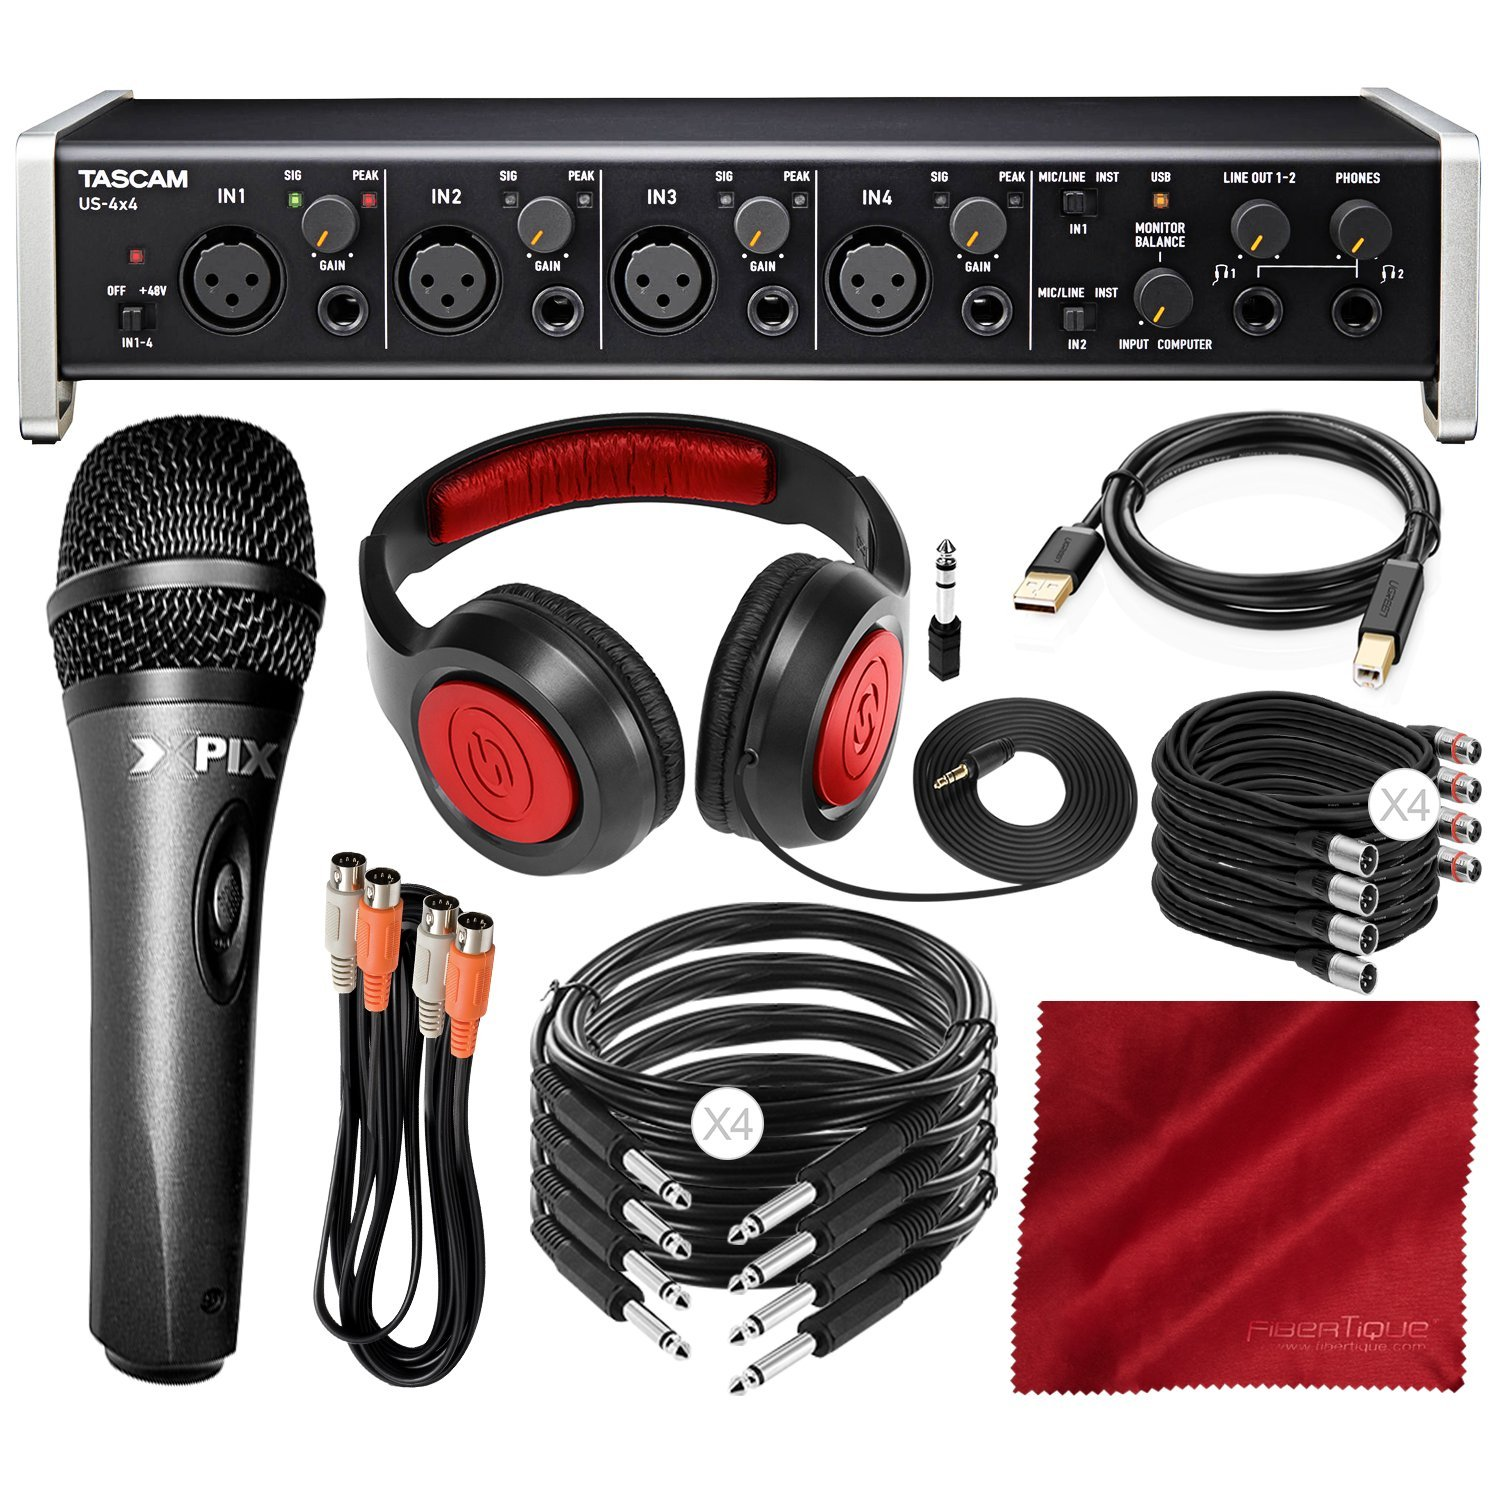 Tascam US-4x4 USB Audio Interface with Xpix Dynamic Condenser Microphone and Deluxe Bundle by Photo Savings